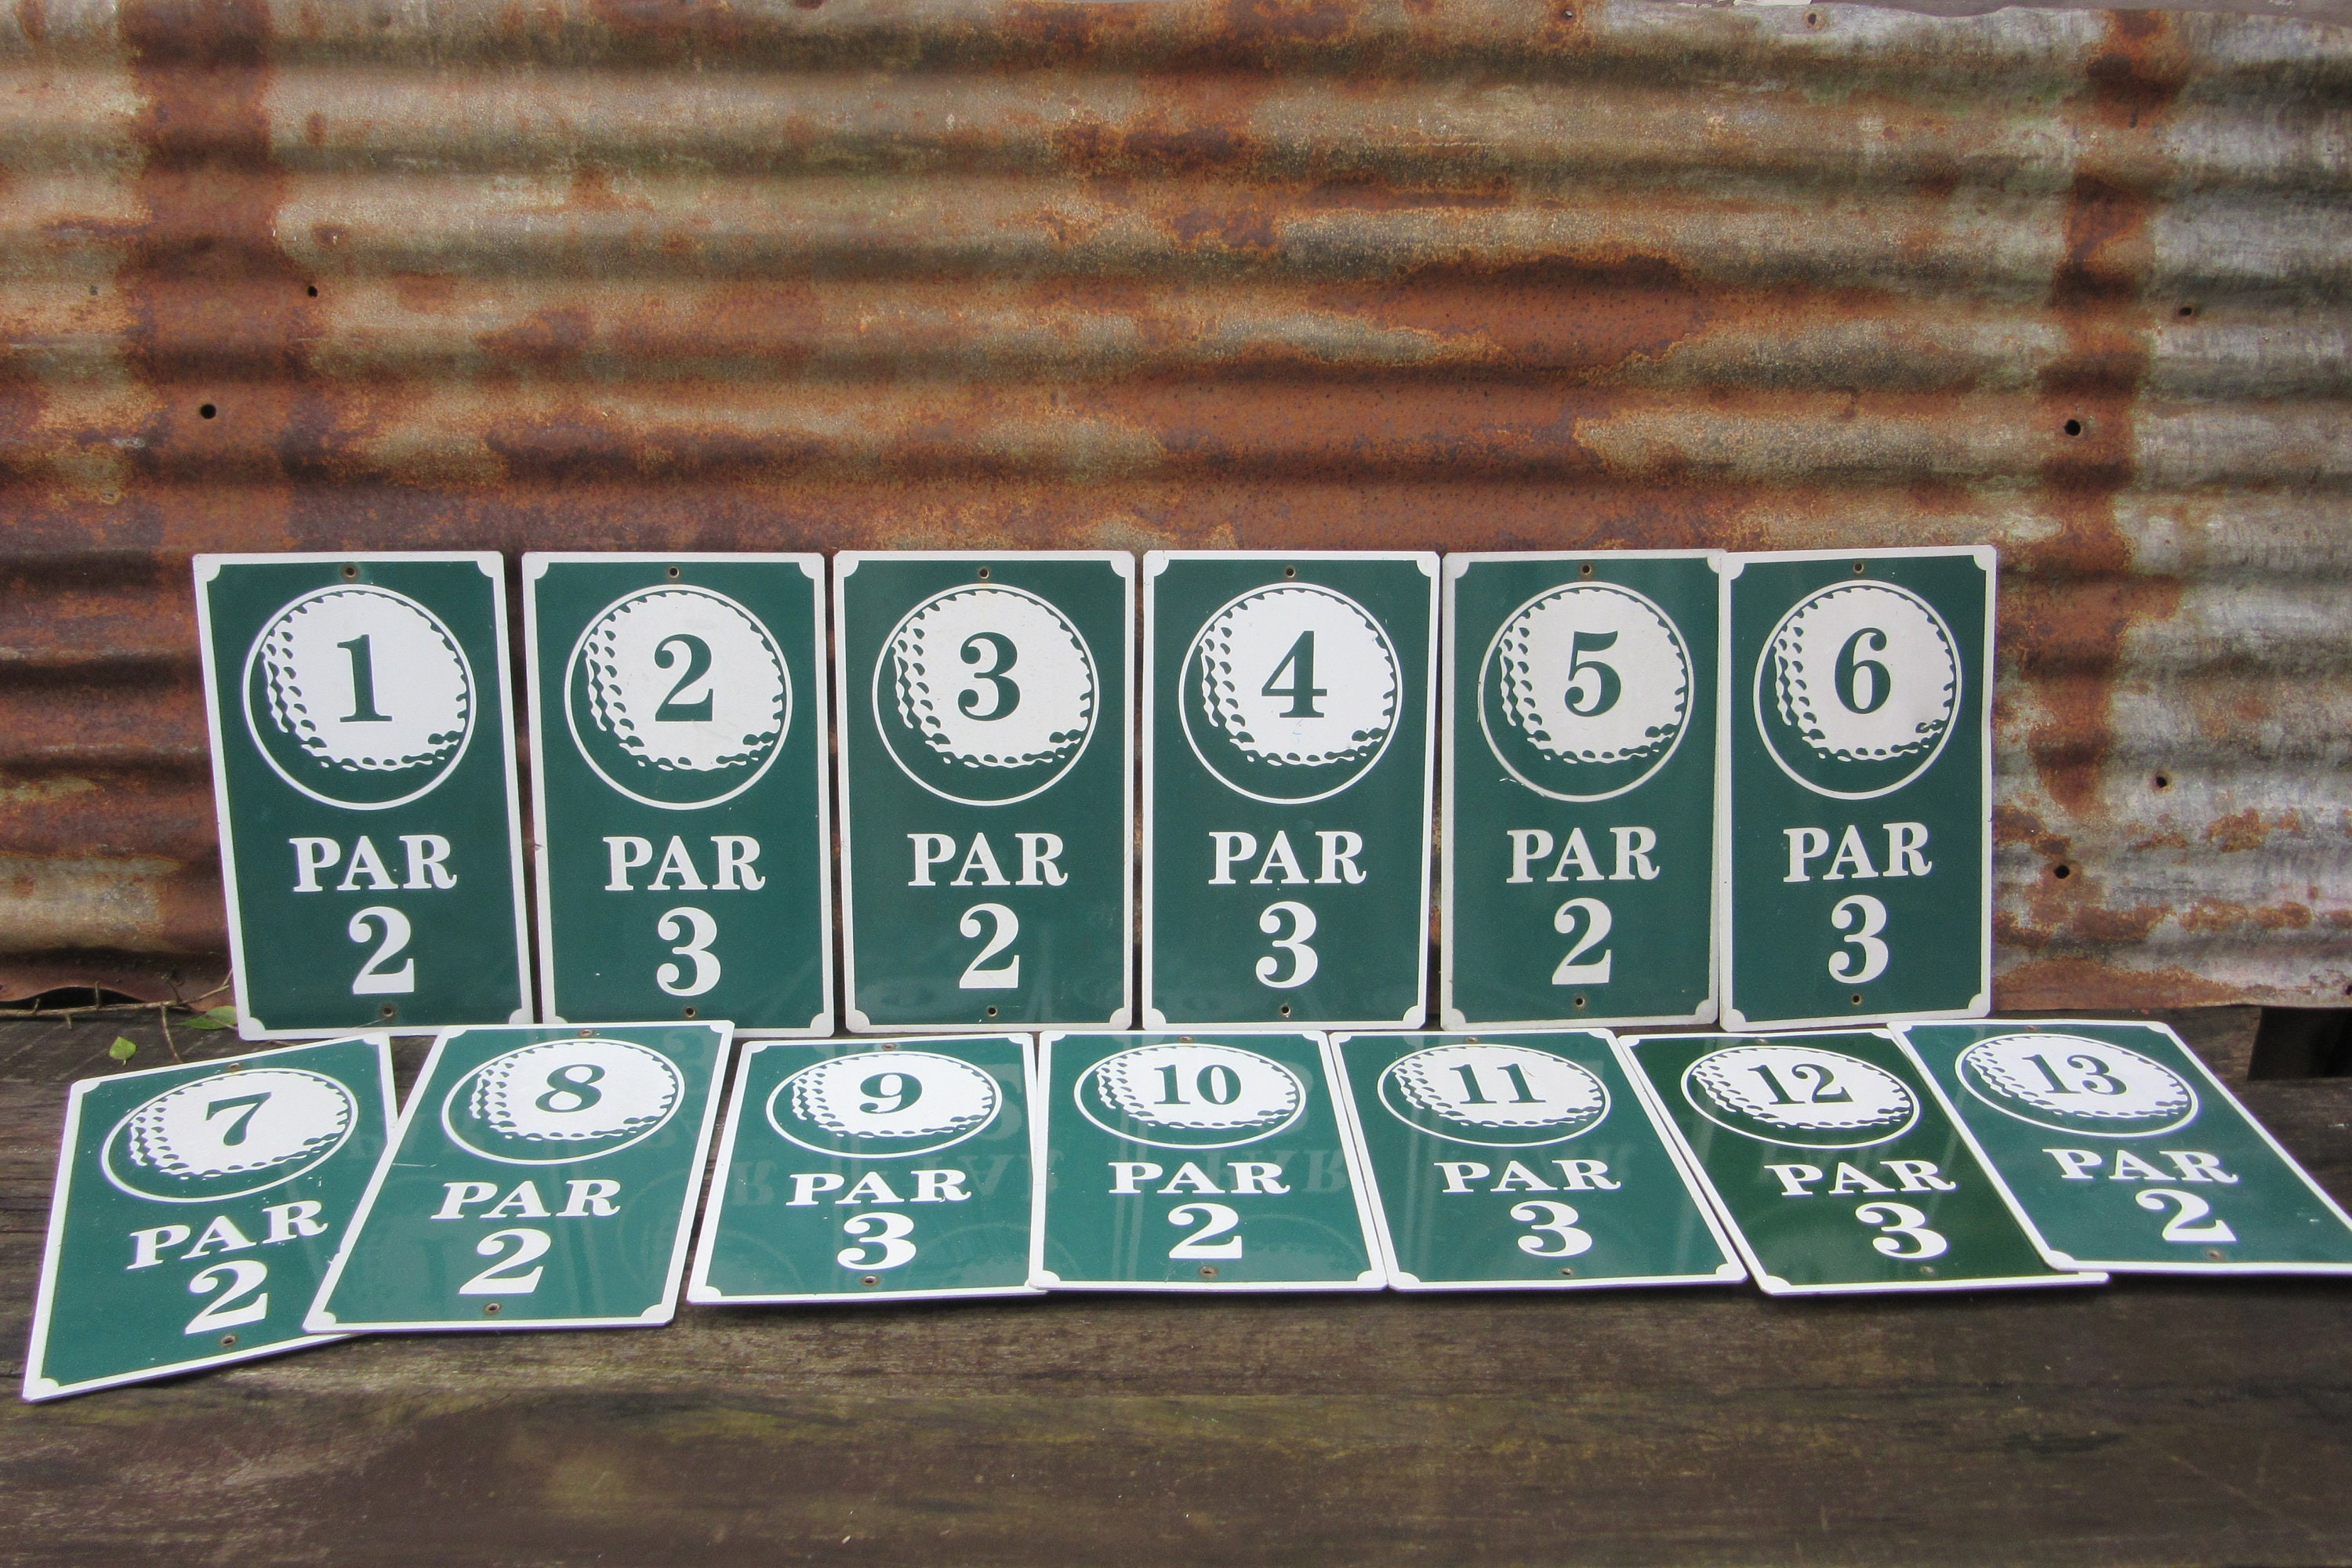 Vintage Metal Golf Course Hole Signs Miniature Golf Hole Numbers Par Sign  Old Golf Course Game Room Sports Room Decor Unique Green and White